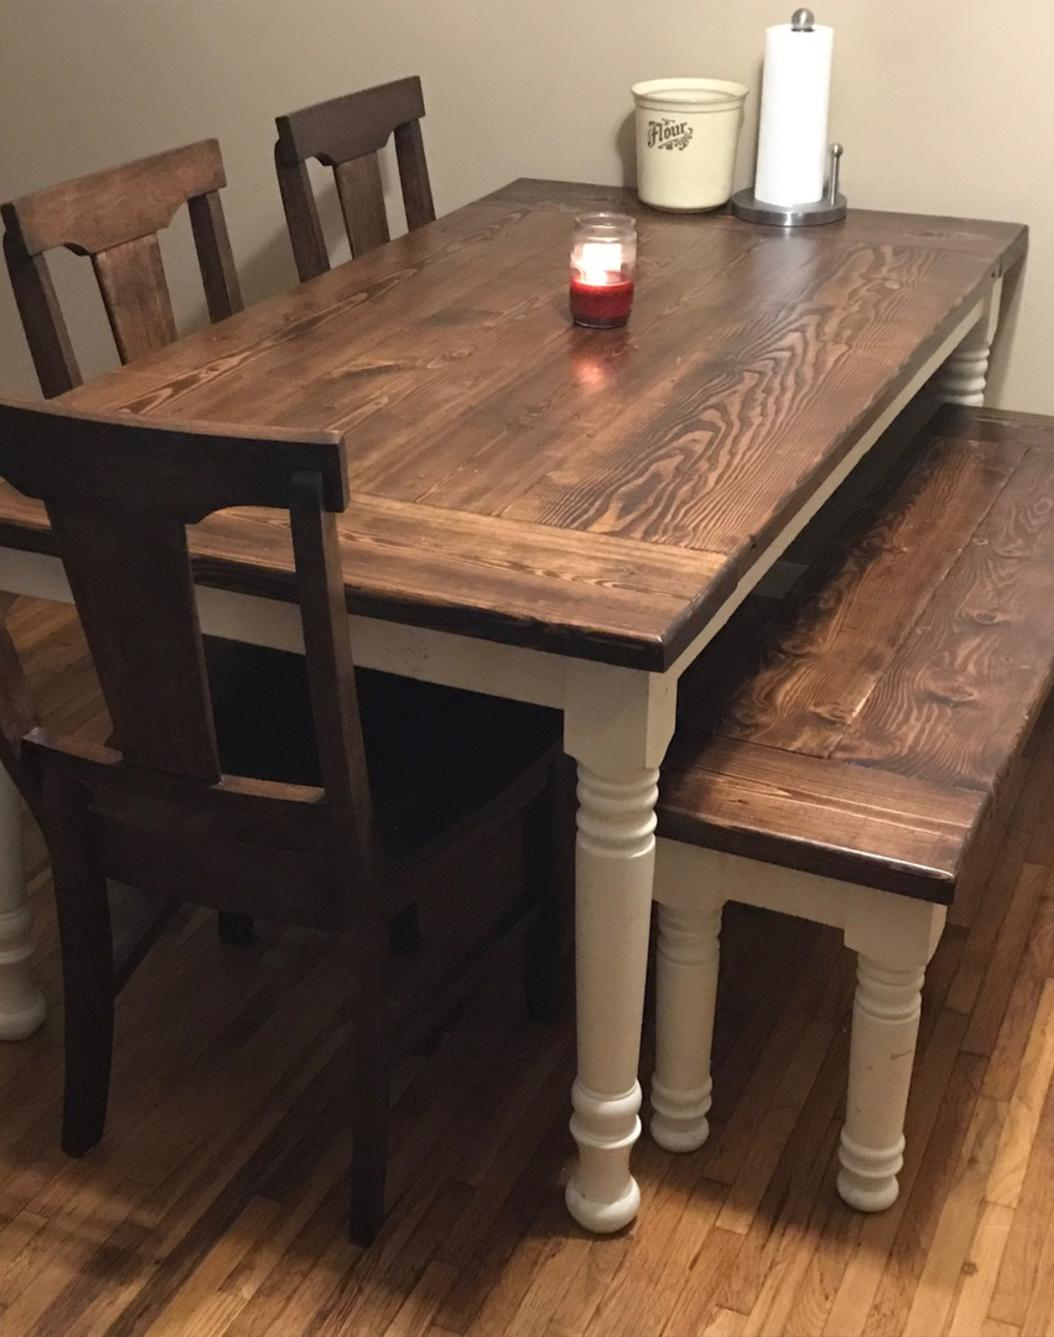 Green country dining table - About Us